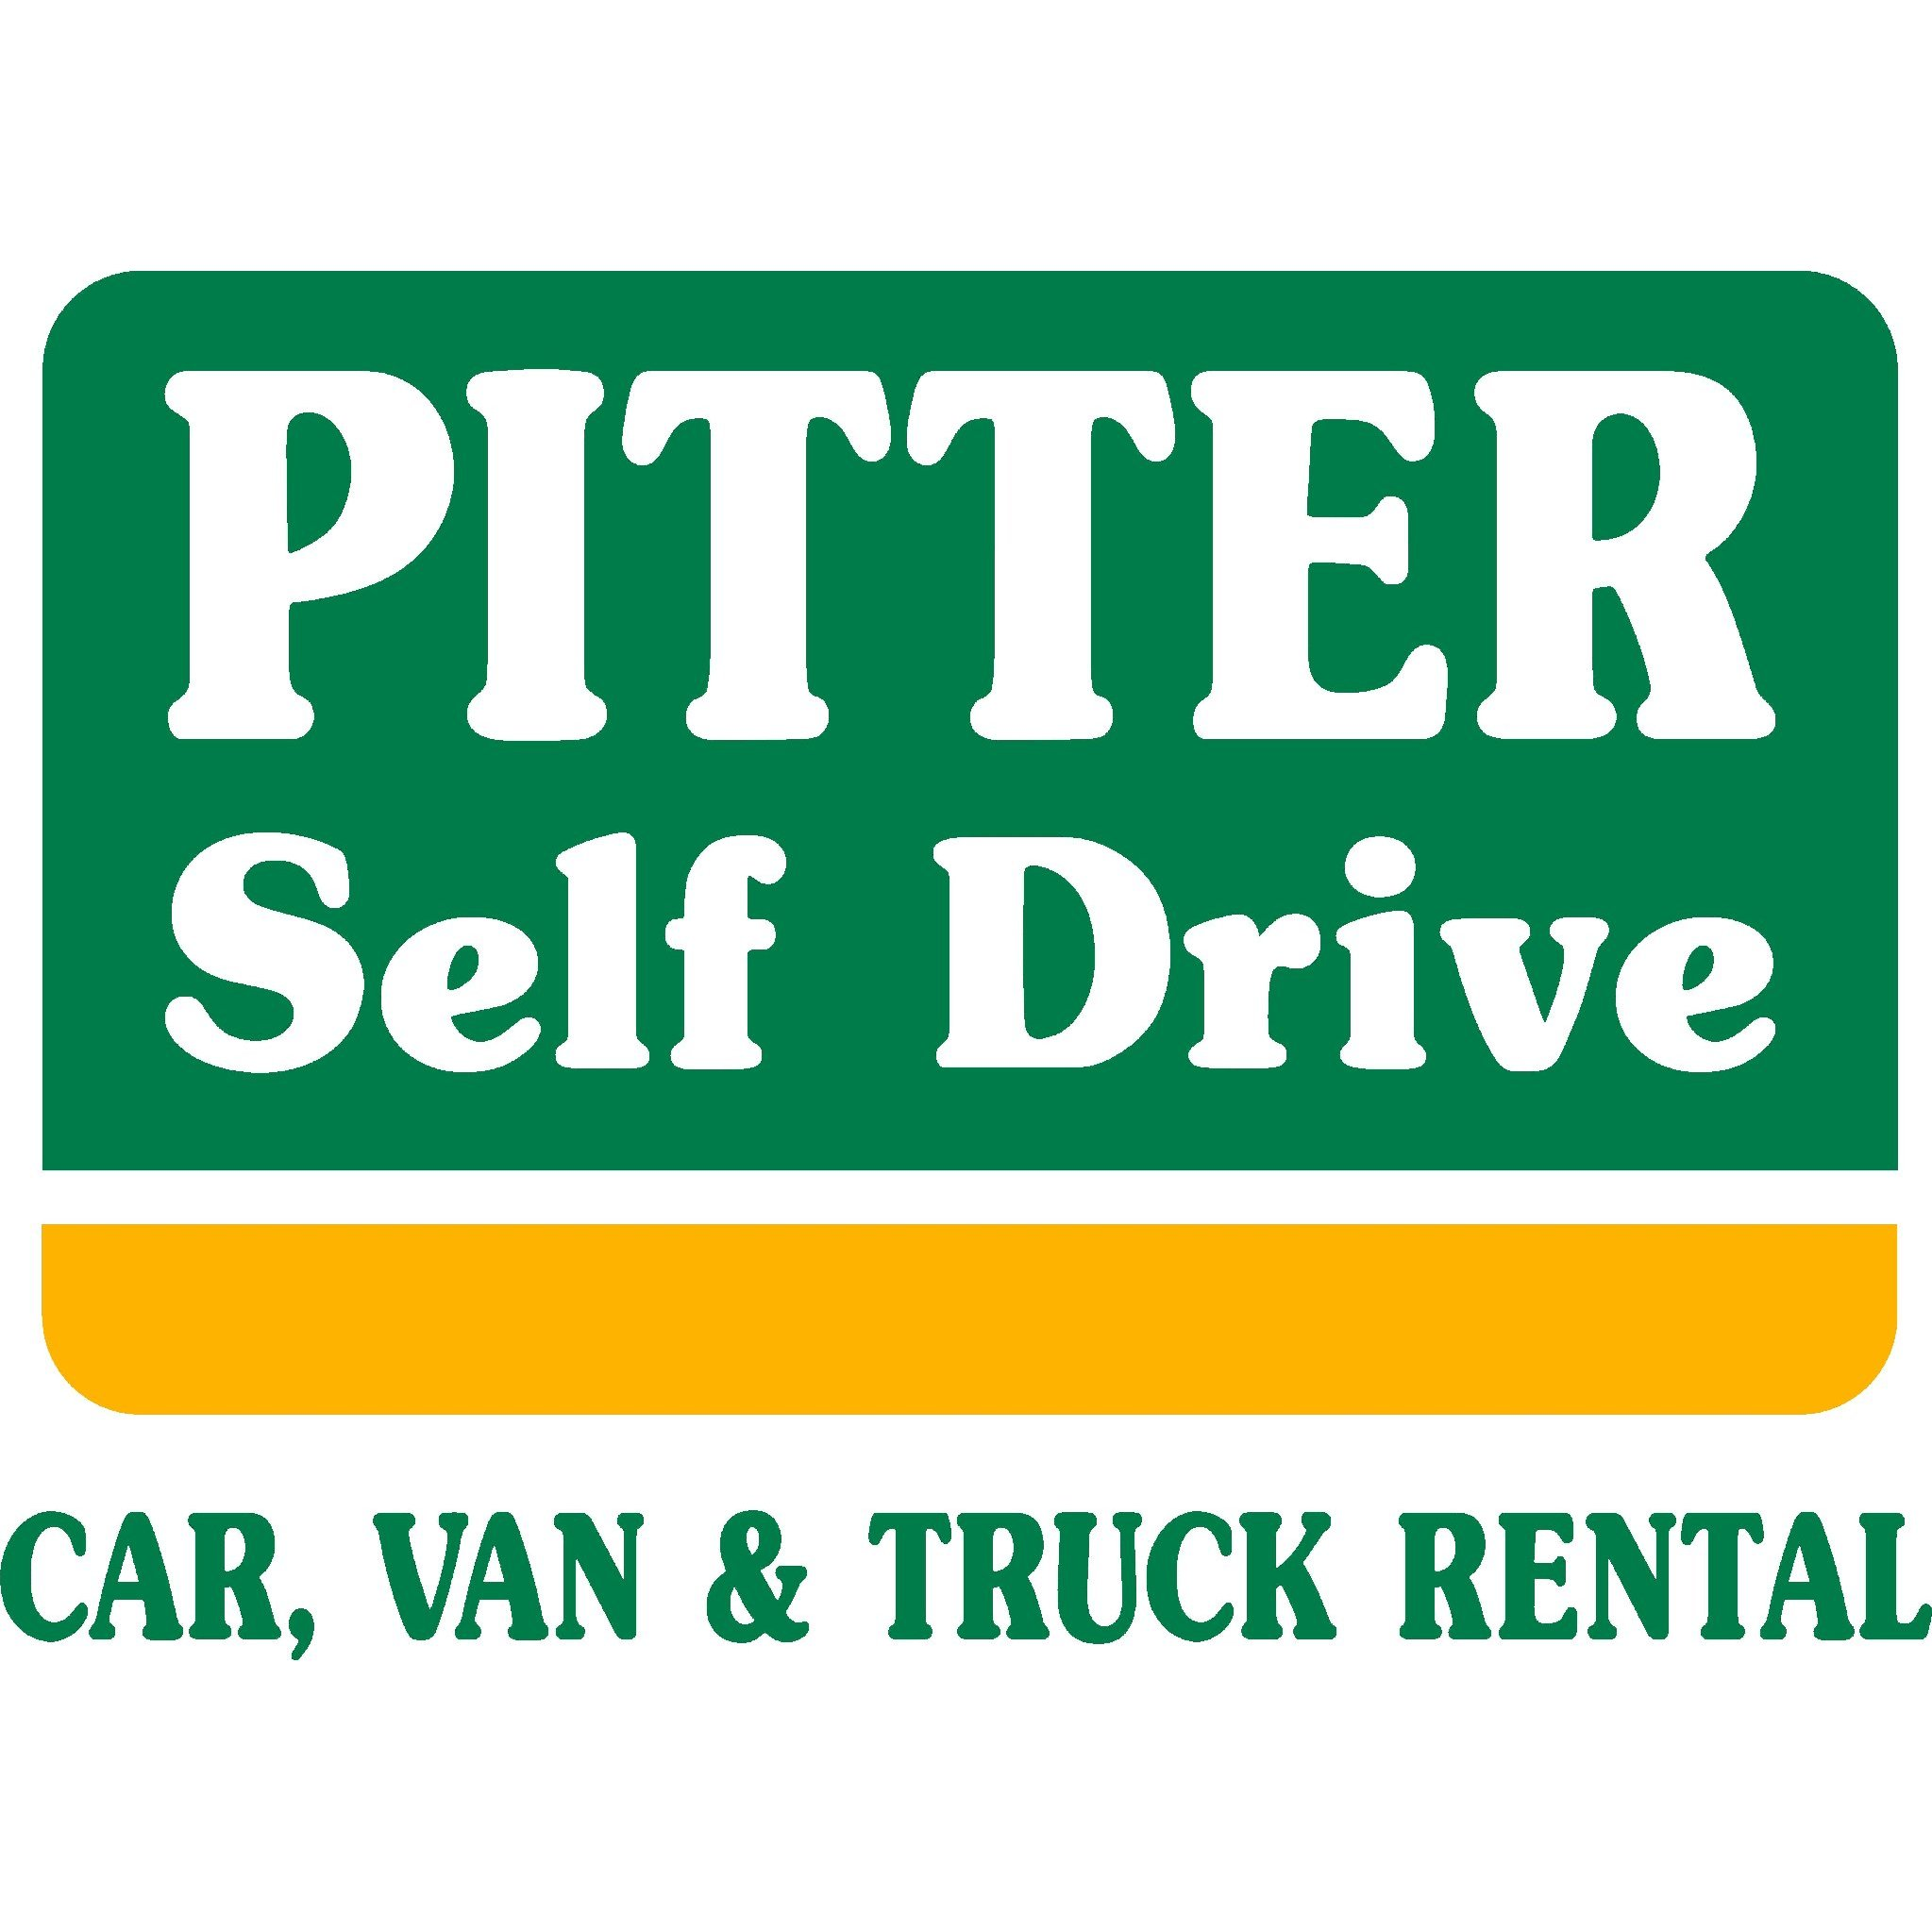 Pitter Self Drive Ltd - Southampton, Hampshire SO30 3HA - 02380 474443 | ShowMeLocal.com